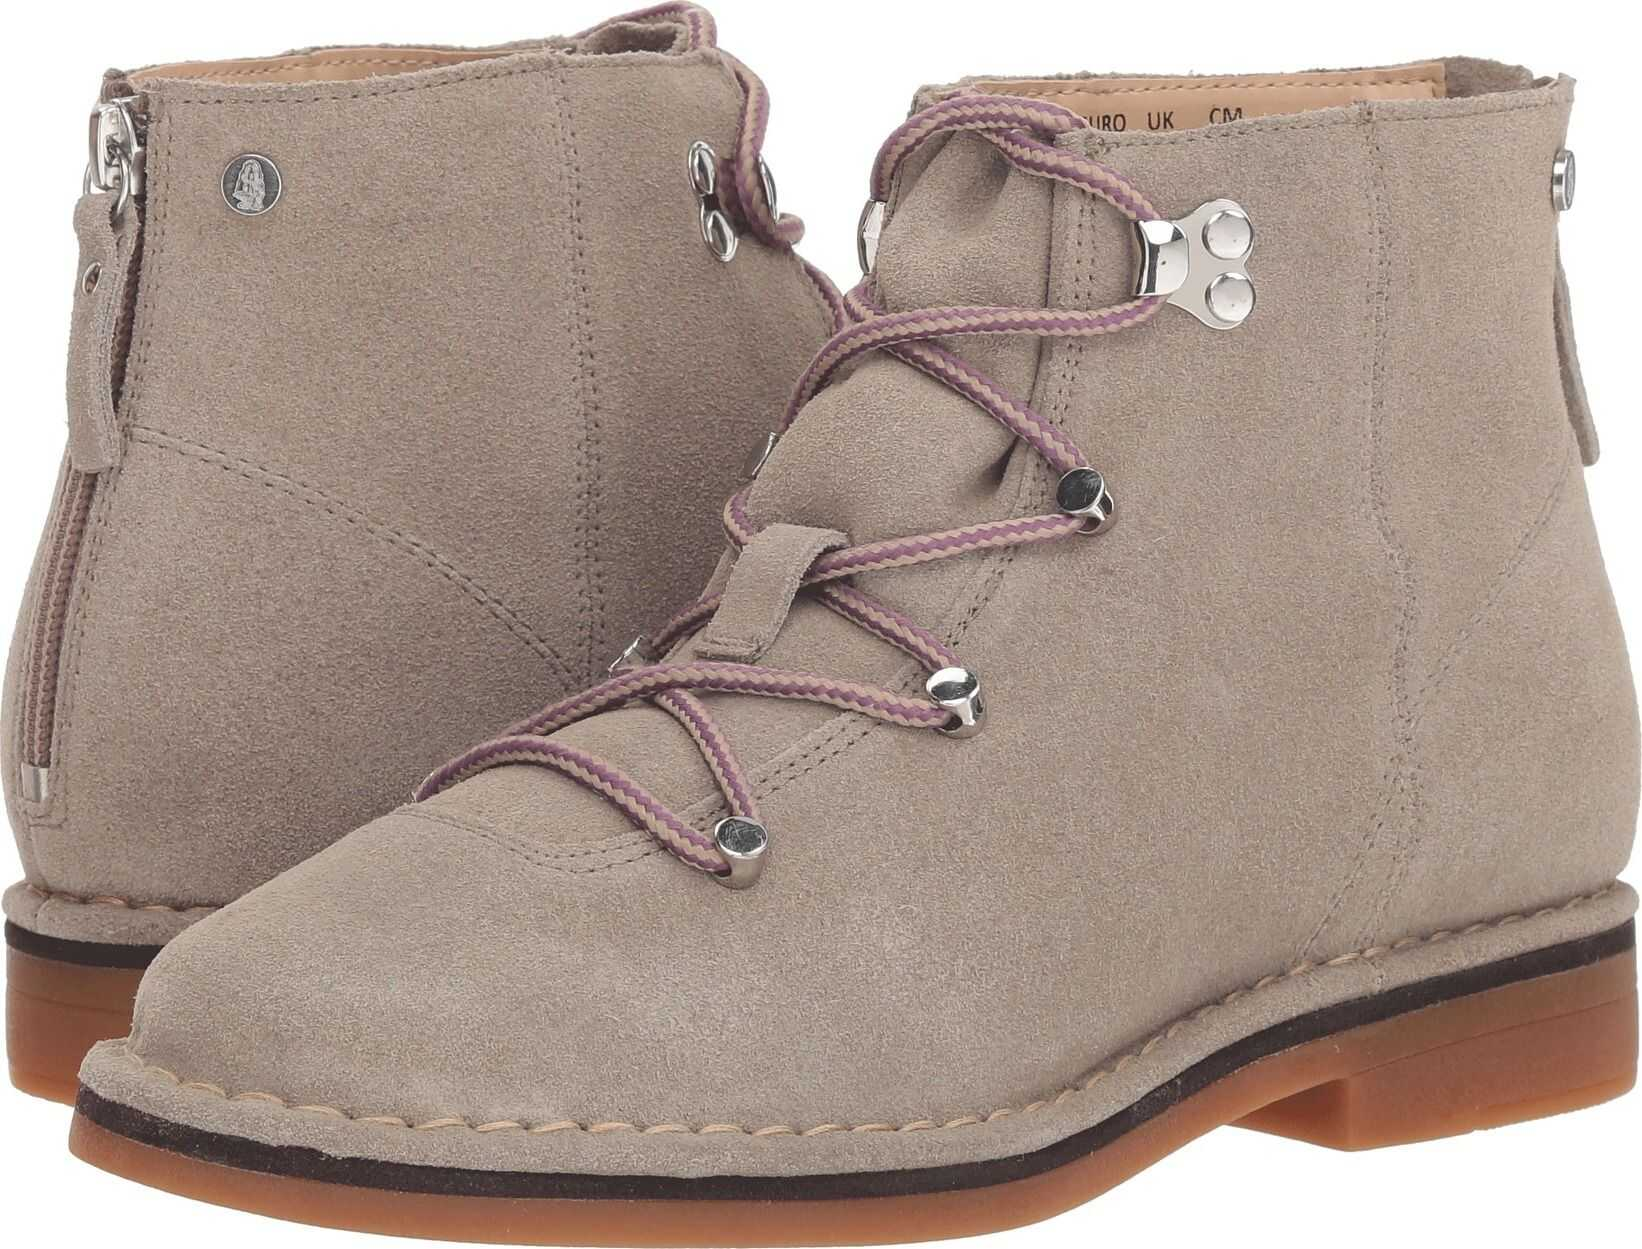 Hush Puppies Catelyn Hiker Boot Taupe Suede